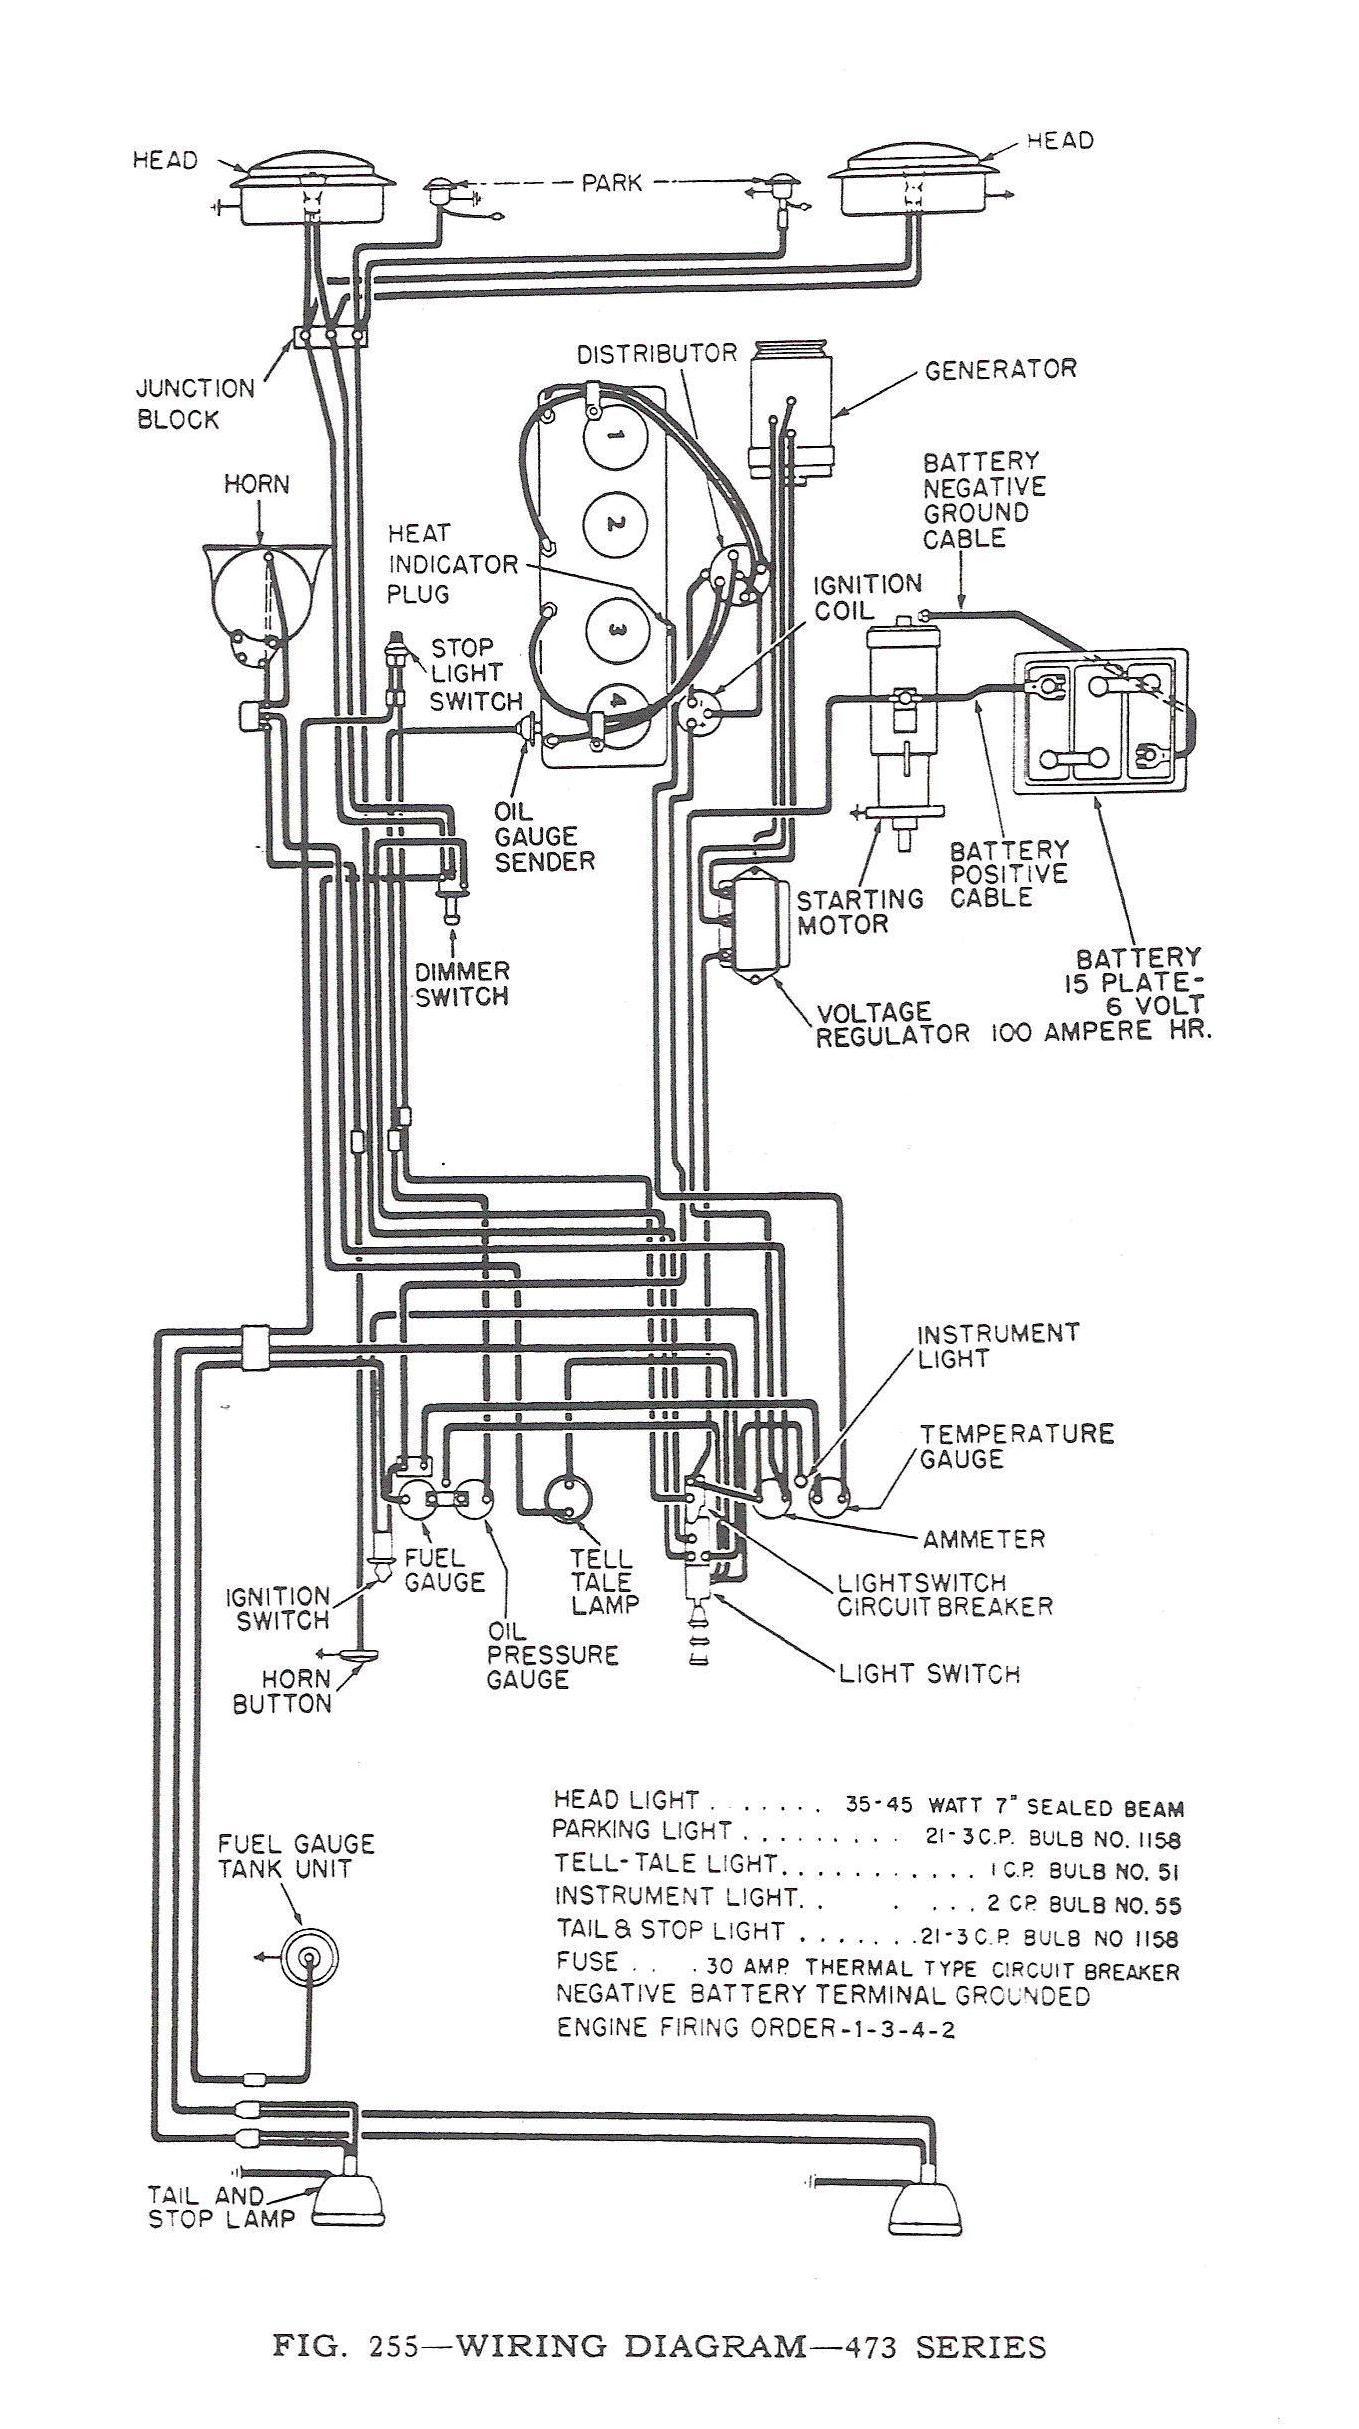 1953 jeep wiring diagram - wiring diagram schematic arch-make -  arch-make.aliceviola.it  aliceviola.it